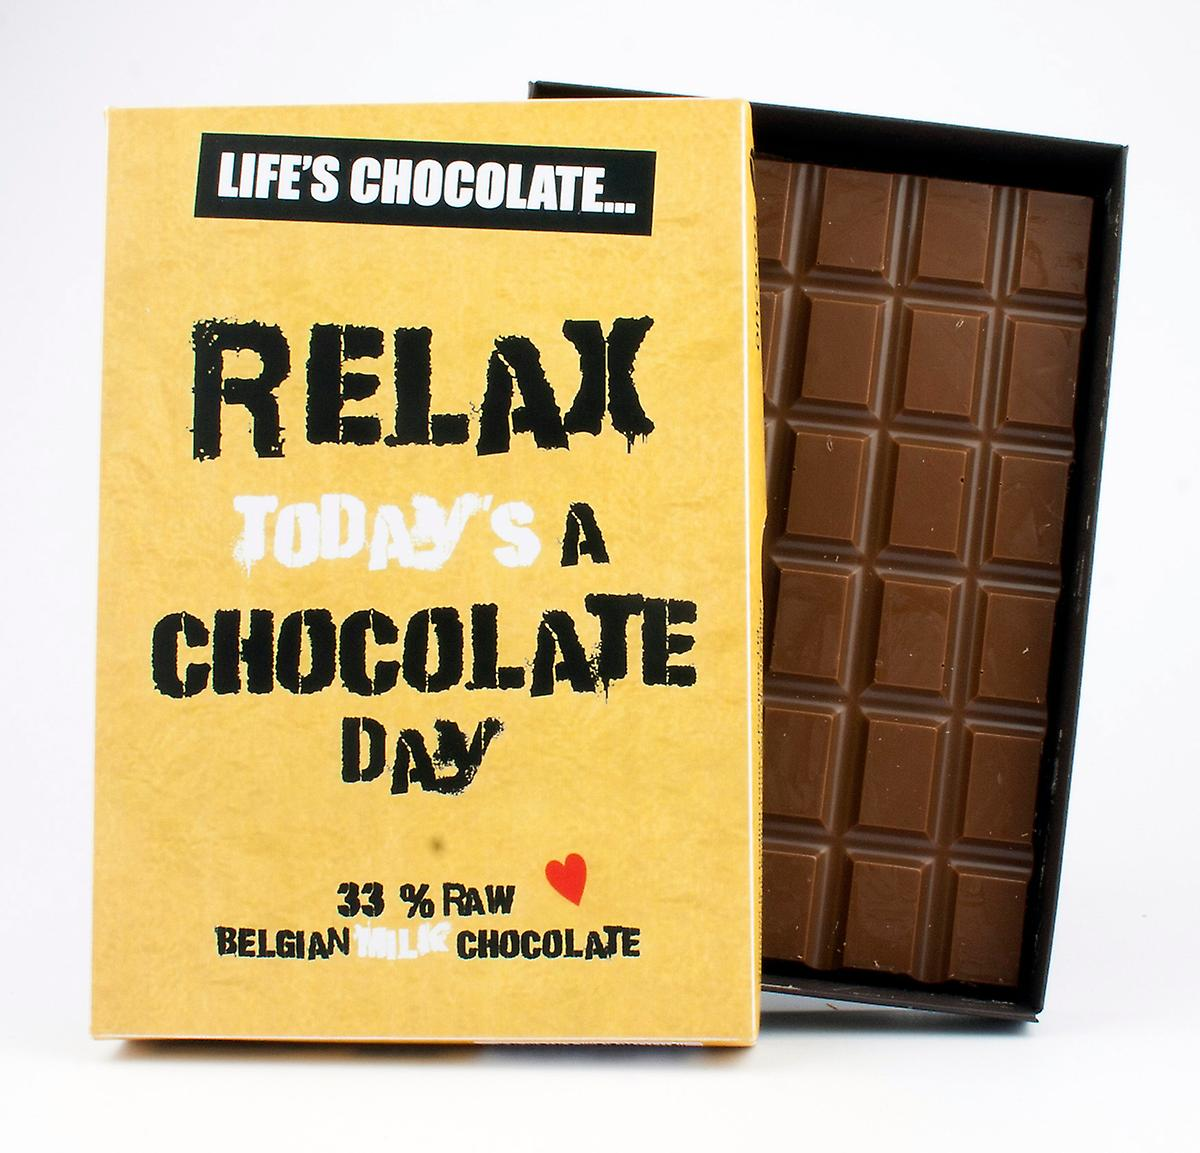 Funny Boxed Chocolate Quote Gift For Men Women Best Friend Greeting Card for Him or Her LC112